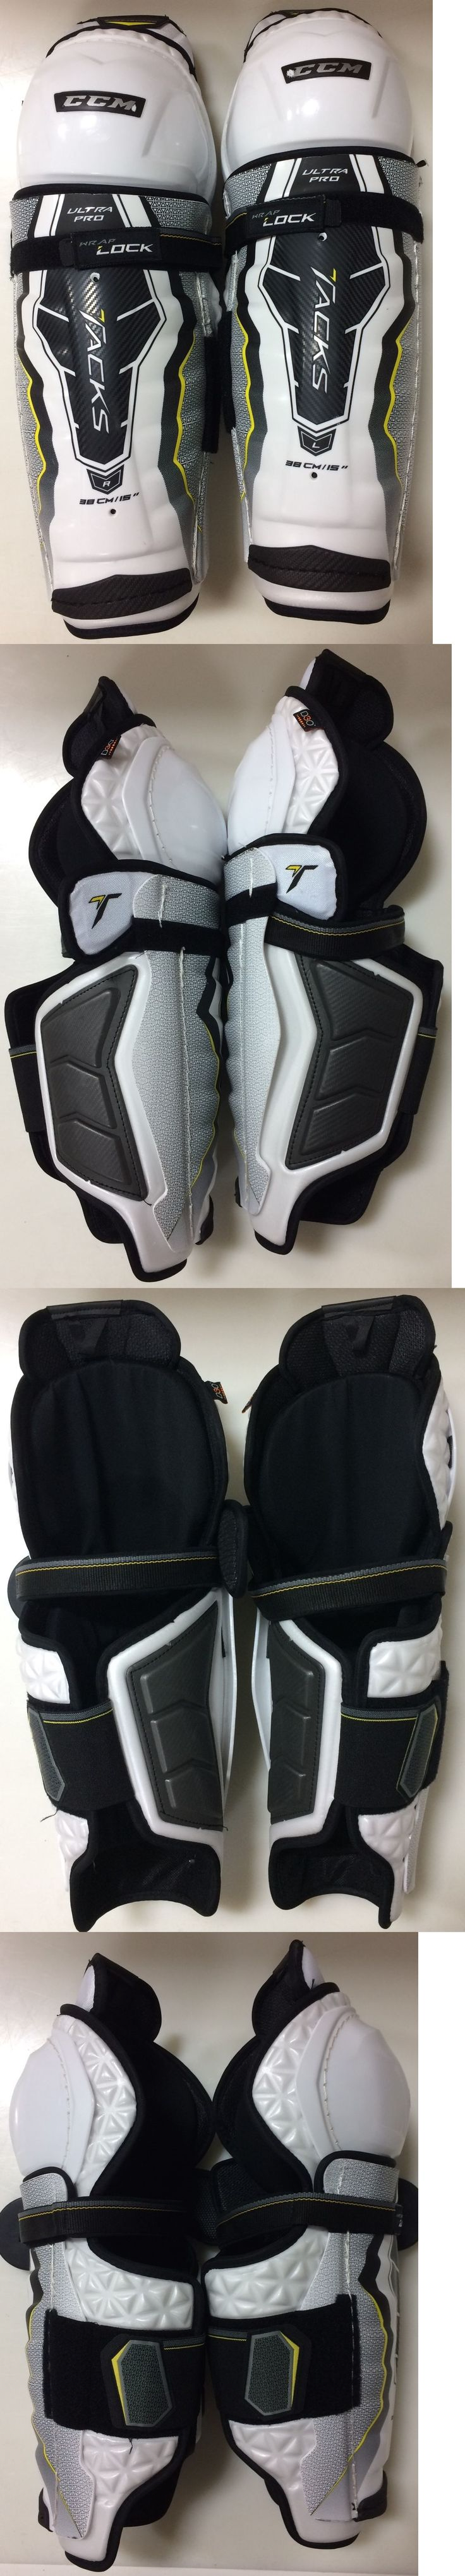 Pads and Guards 20856: Ccm Ultra Pro Tacks Pro Stock Hockey Shin Pads Guards Senior 15 2544 -> BUY IT NOW ONLY: $125 on eBay!